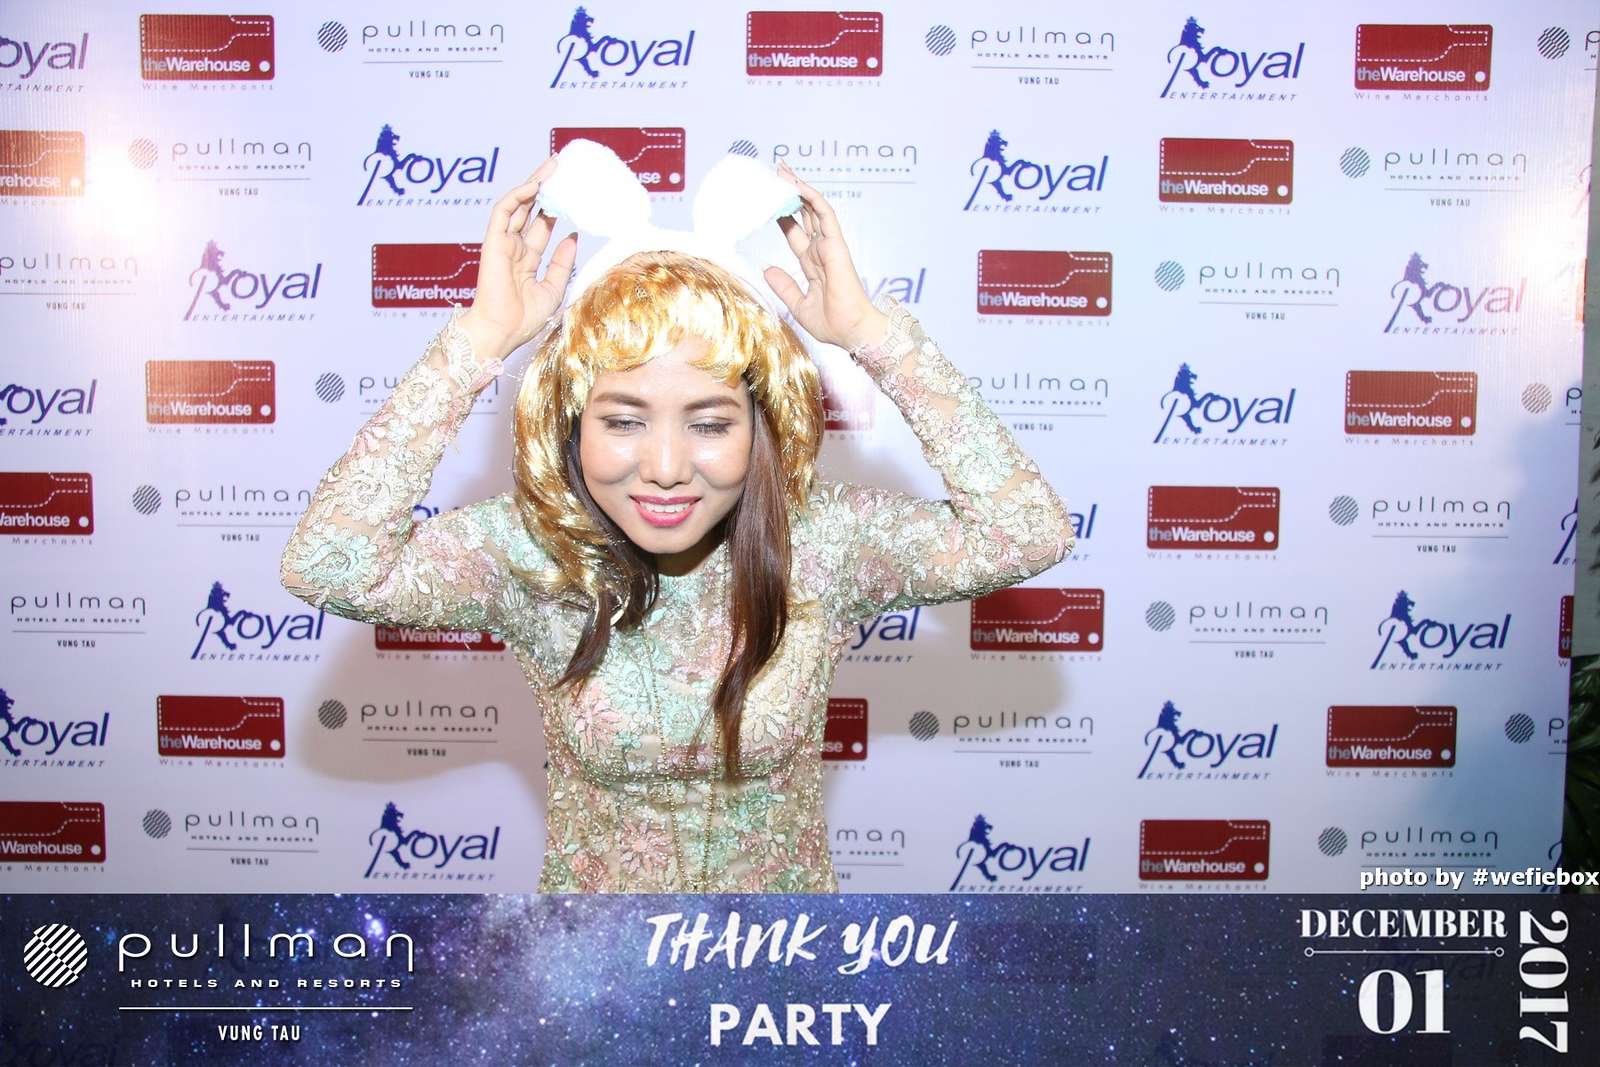 Pullman-Vung-Tau-Thank-You-Party-2017-photobooth-instant-print-chup-anh-lay-lien-su-kien-tiec-cuoi-053